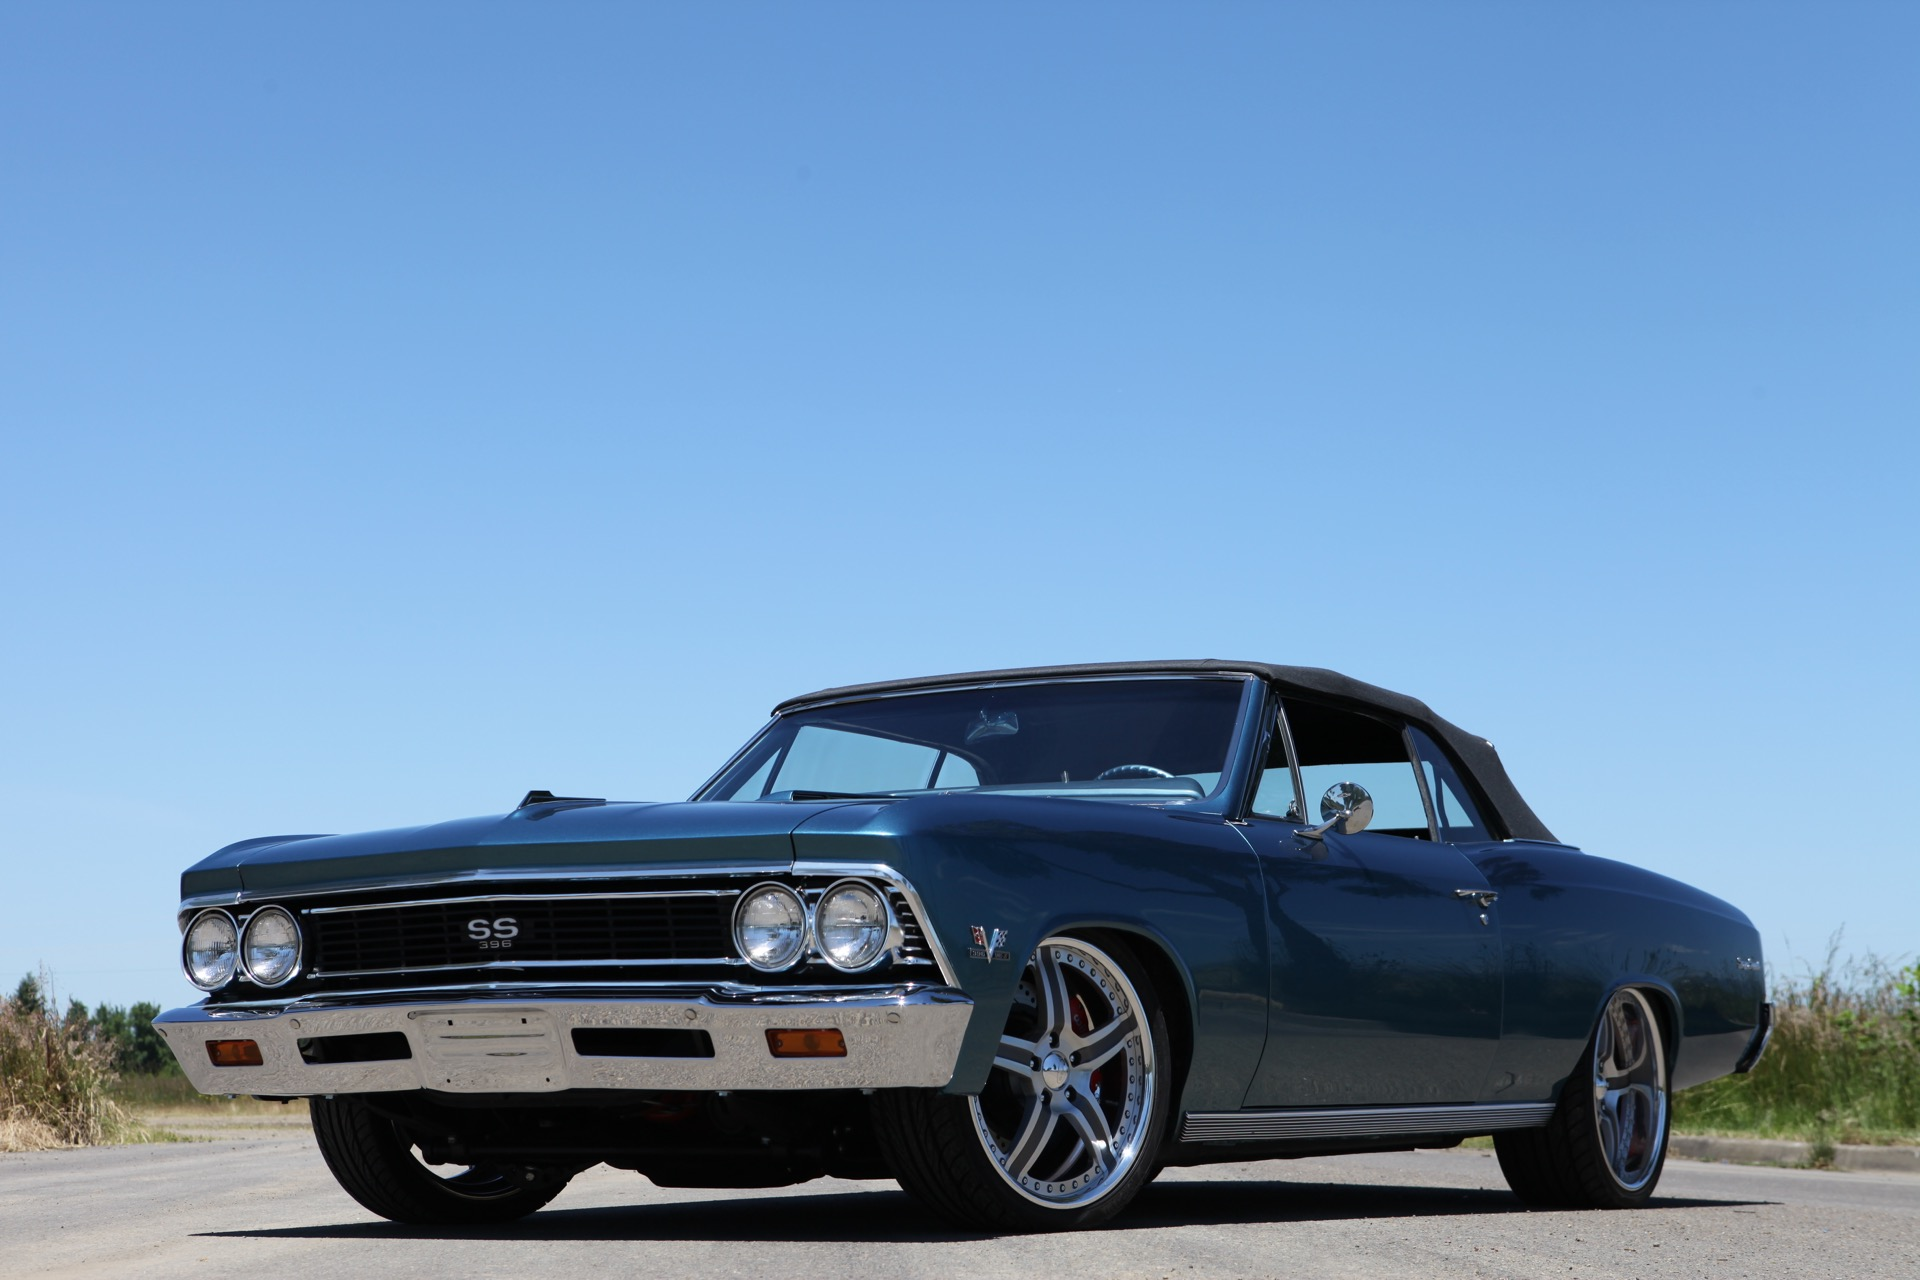 1966 Chevelle Metalworks Classics Auto Restoration Speed Shop Chevrolet Camaro Ss Assembly